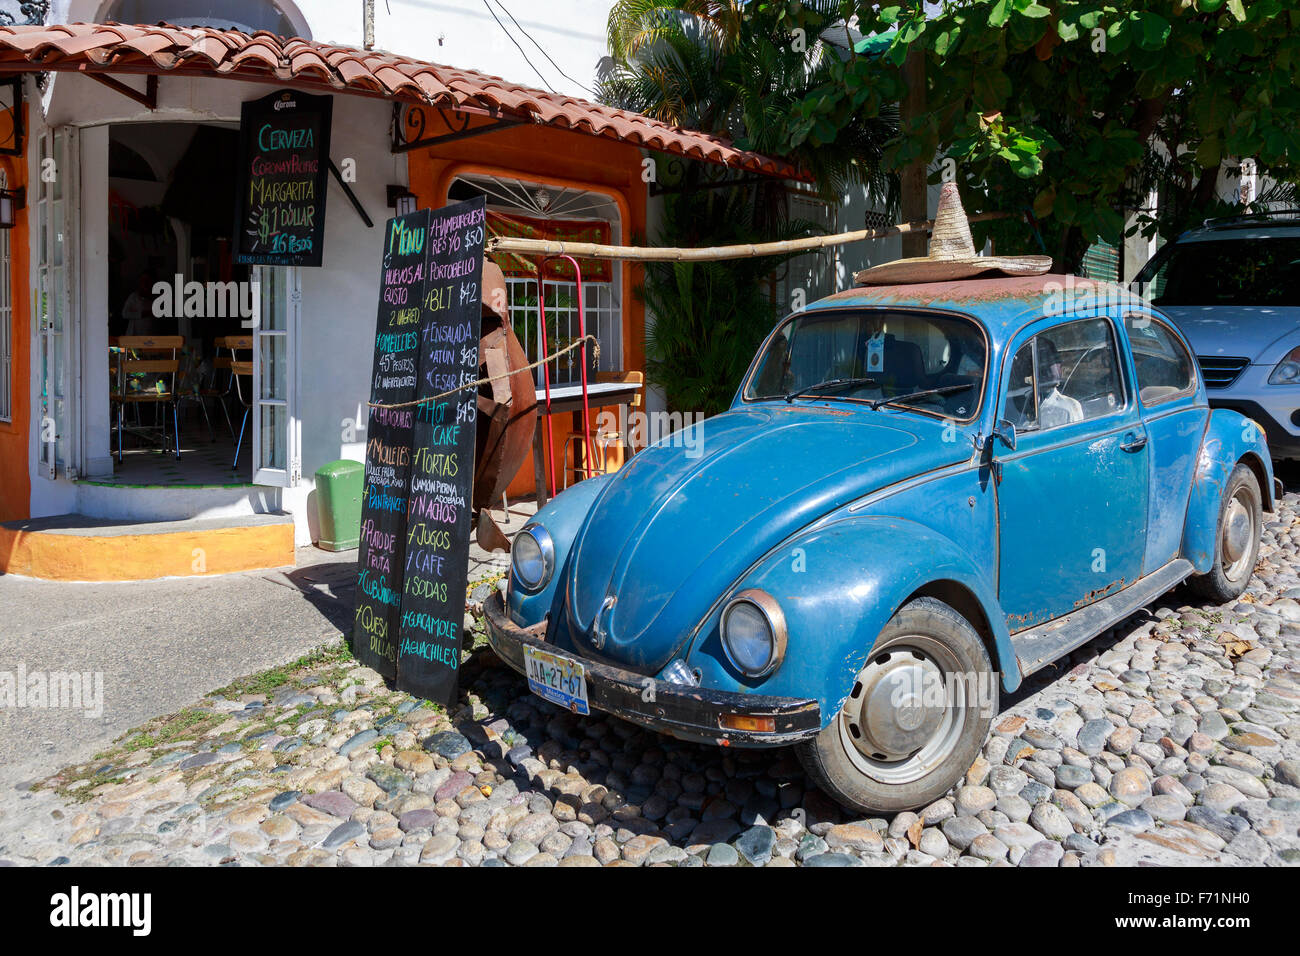 Mexican Cafe Stock Photos Images Alamy Vw Beetle Wiring Diagram Small Styled Bar With A Menu Outside And An Old Volkswagen Wearing